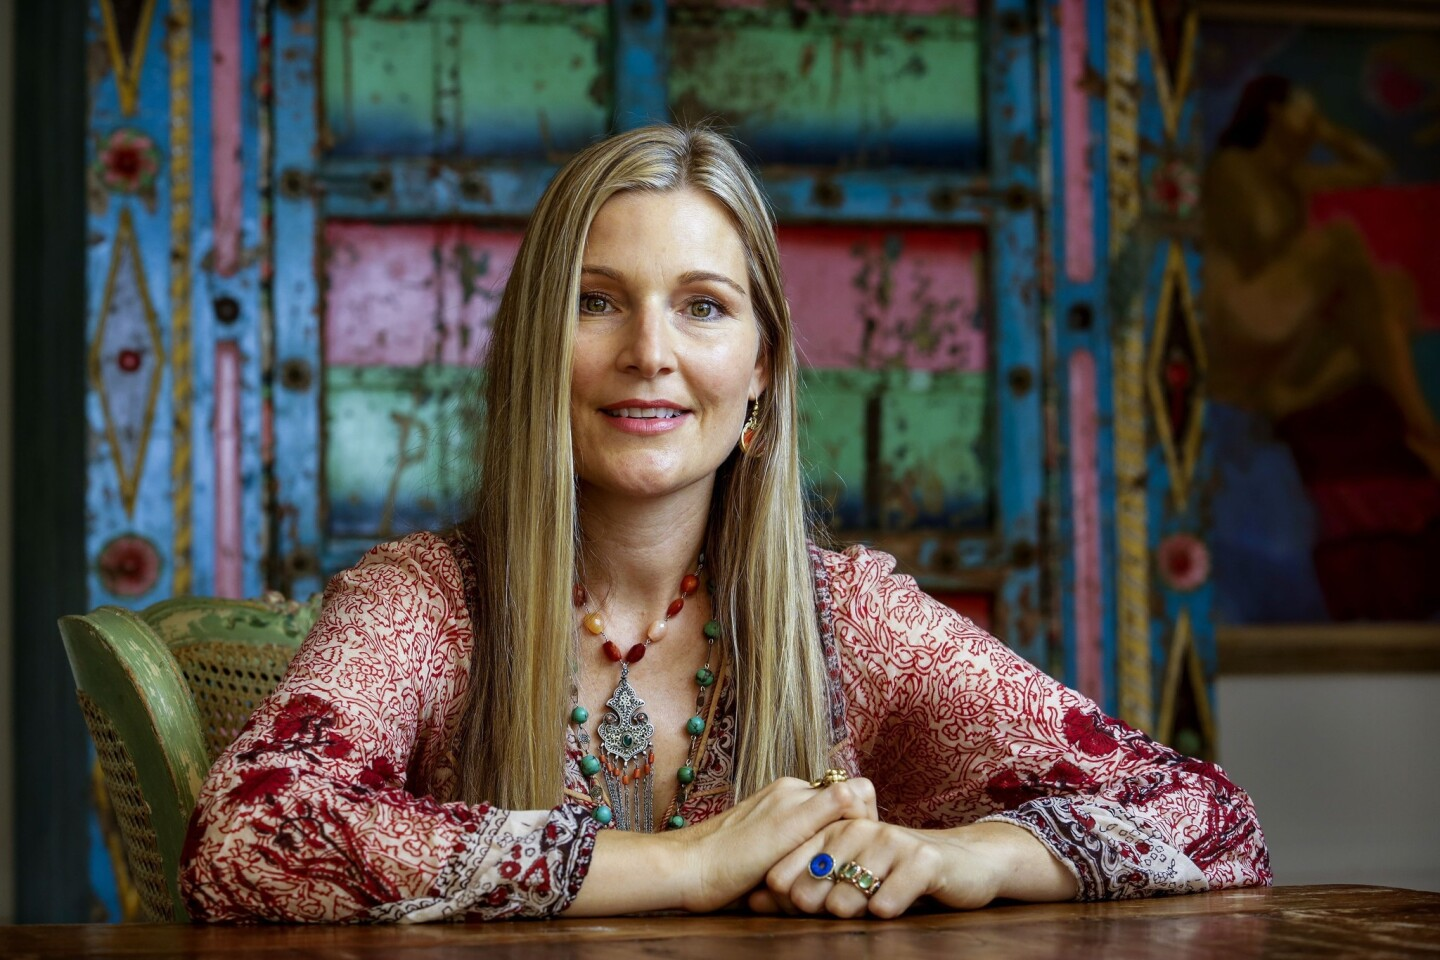 """Clothing designer Sage Machado closed her Los Angeles boutique of 20 years to focus on jewelry design, lifestyle consulting and """"gem therapy."""""""